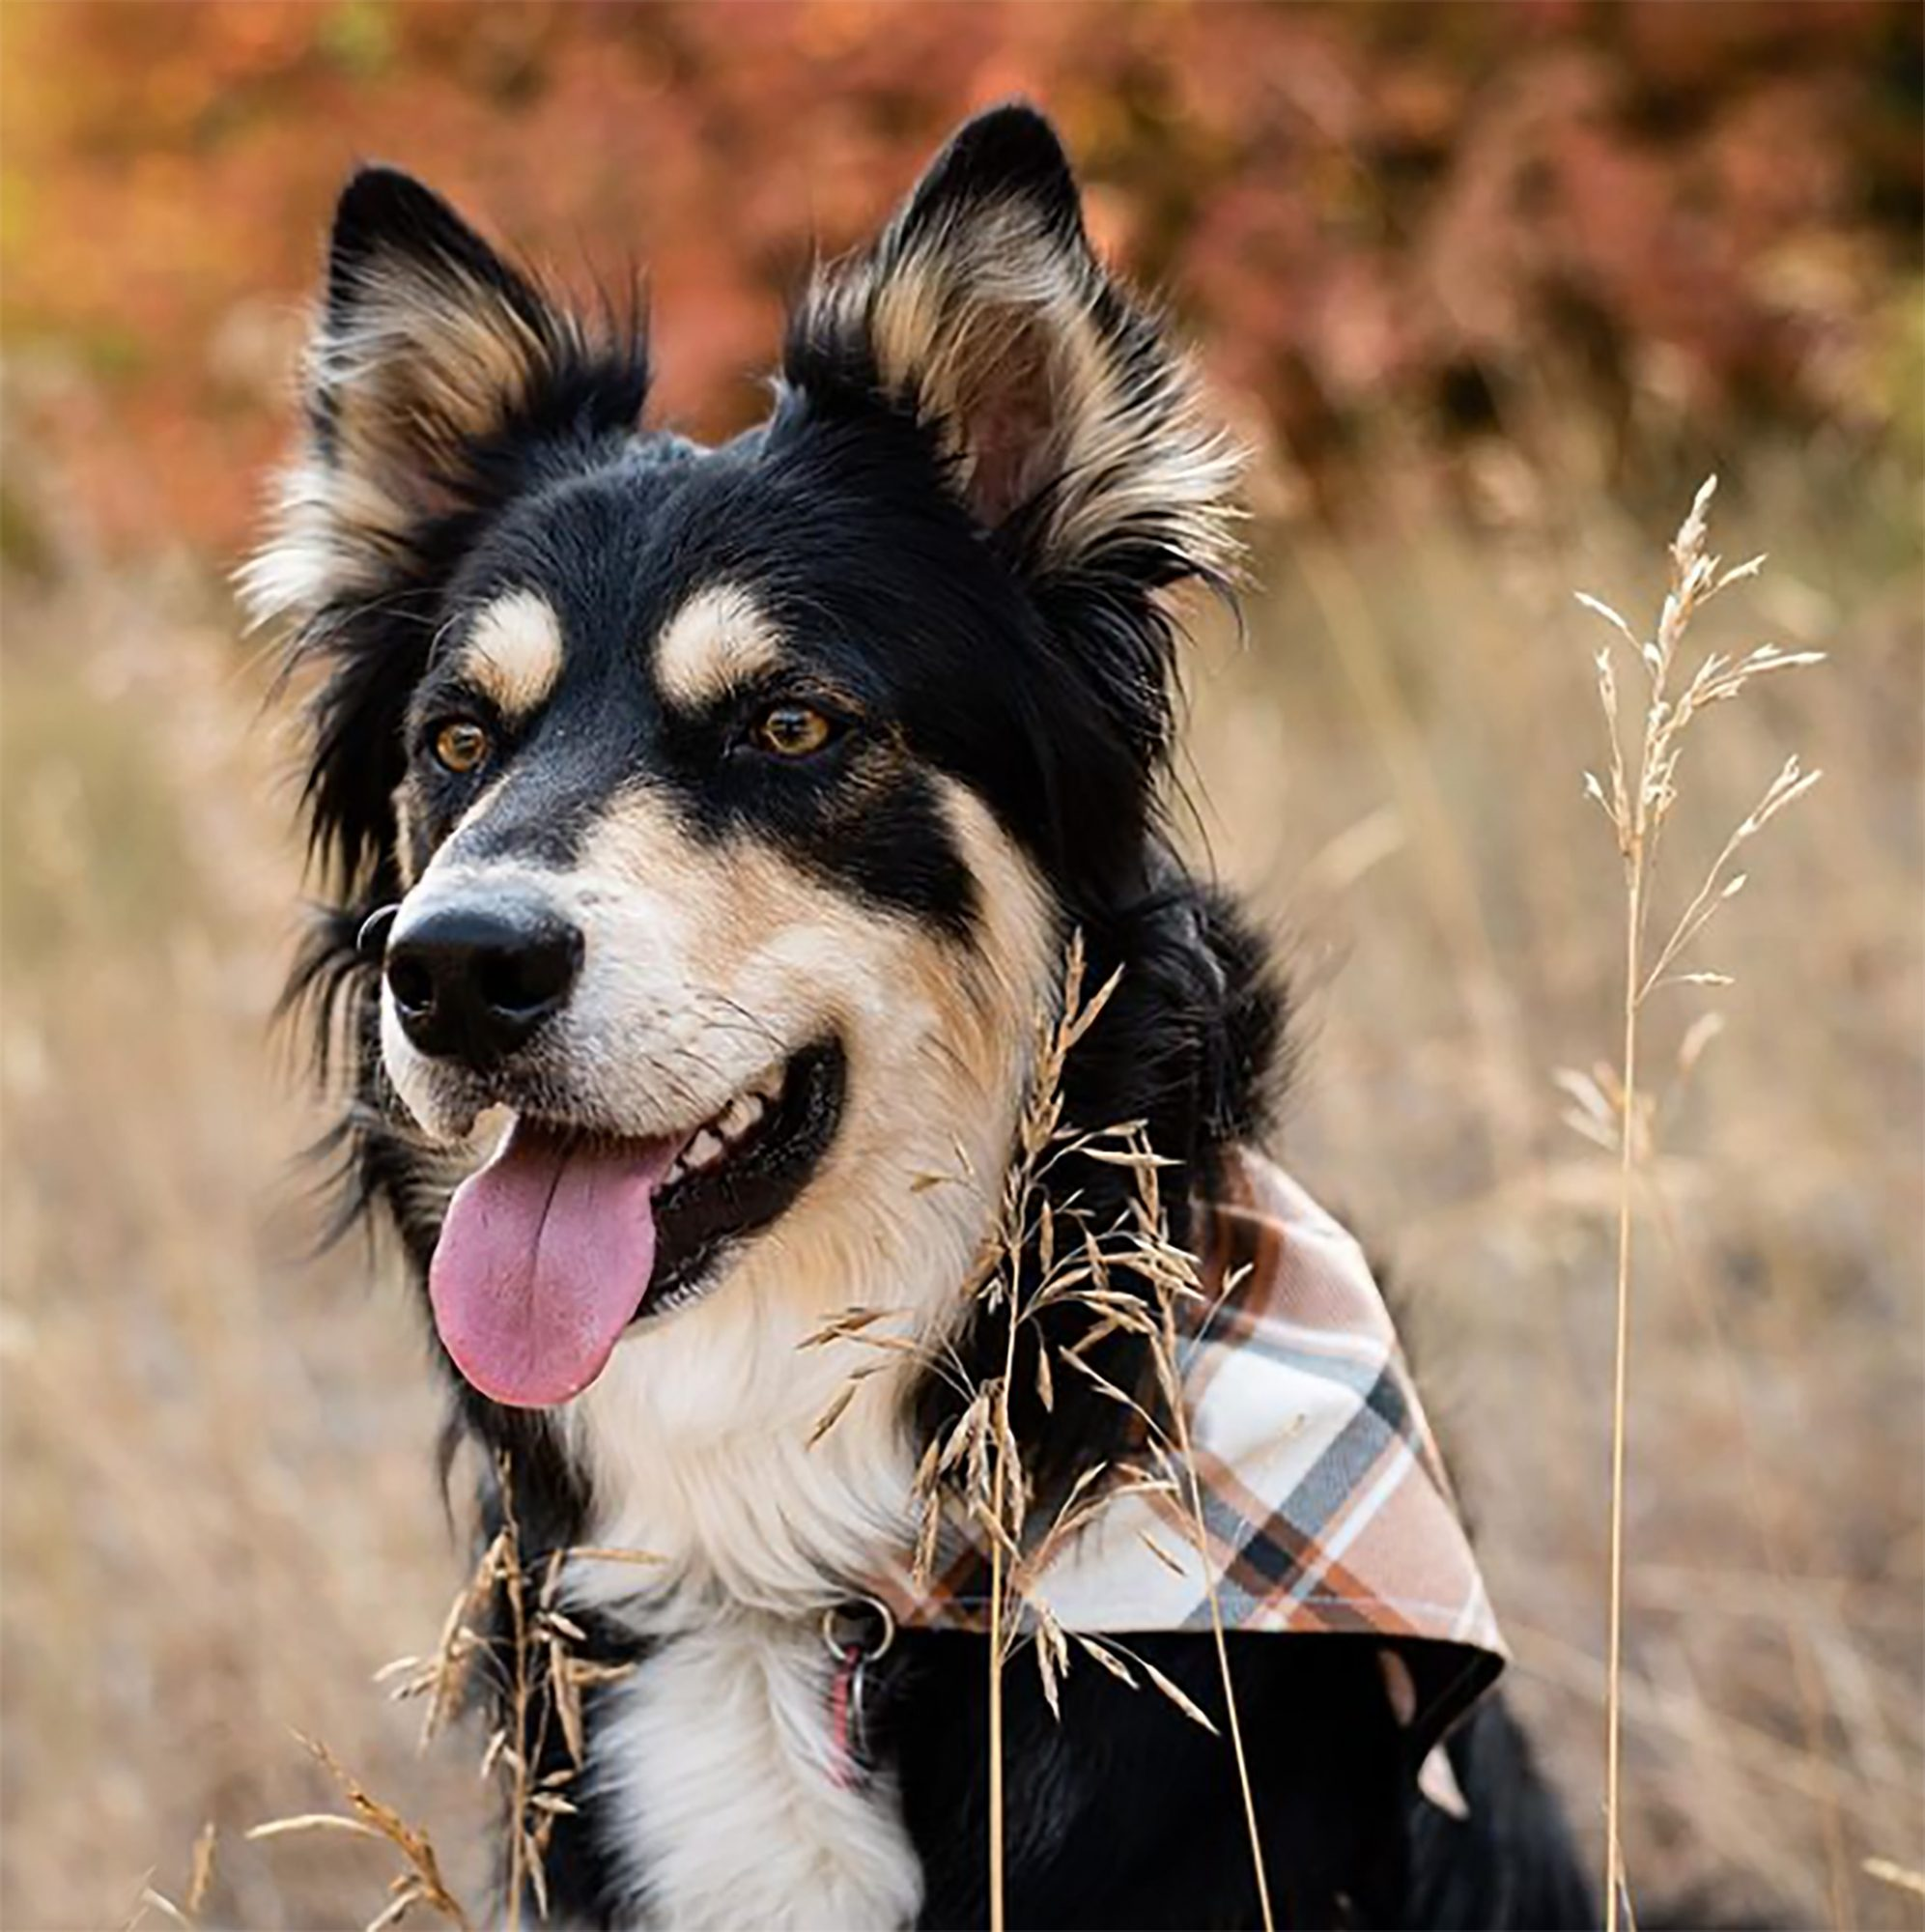 Ausky with Husky face and Aussie coat